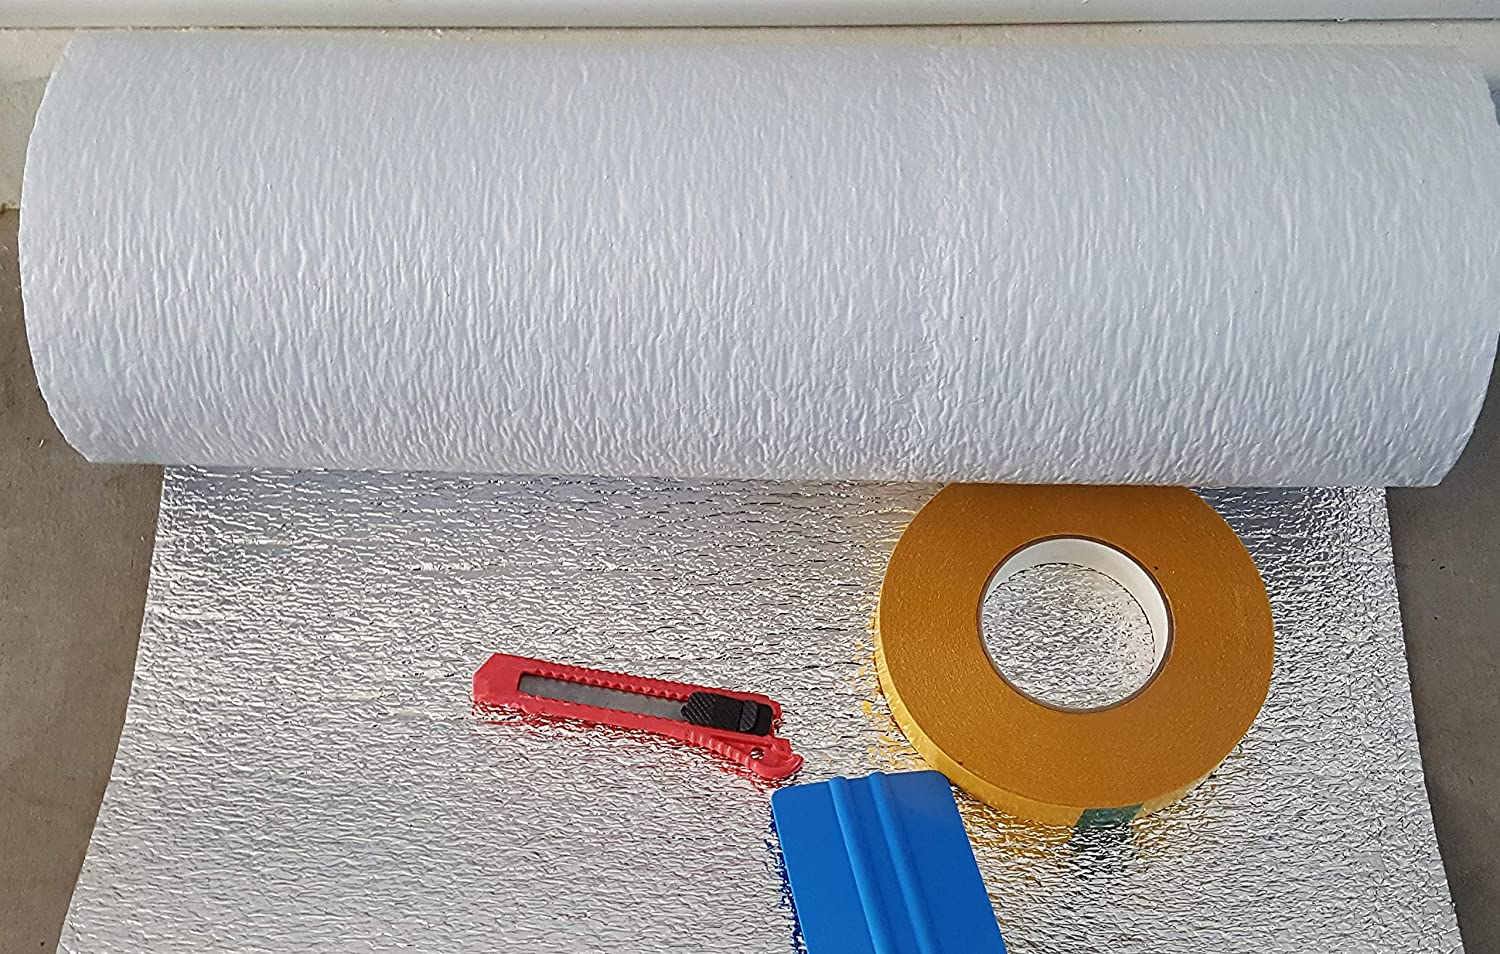 R Value 8.0 Made in USA New and Improved Heavy Duty Double Sided Tape Also FITS 18 X 7 Wide HIGH Ant NASA TECH White Reflective Foam Core 2 Car Garage Door Insulation Kit 18 Ft x 8 Ft